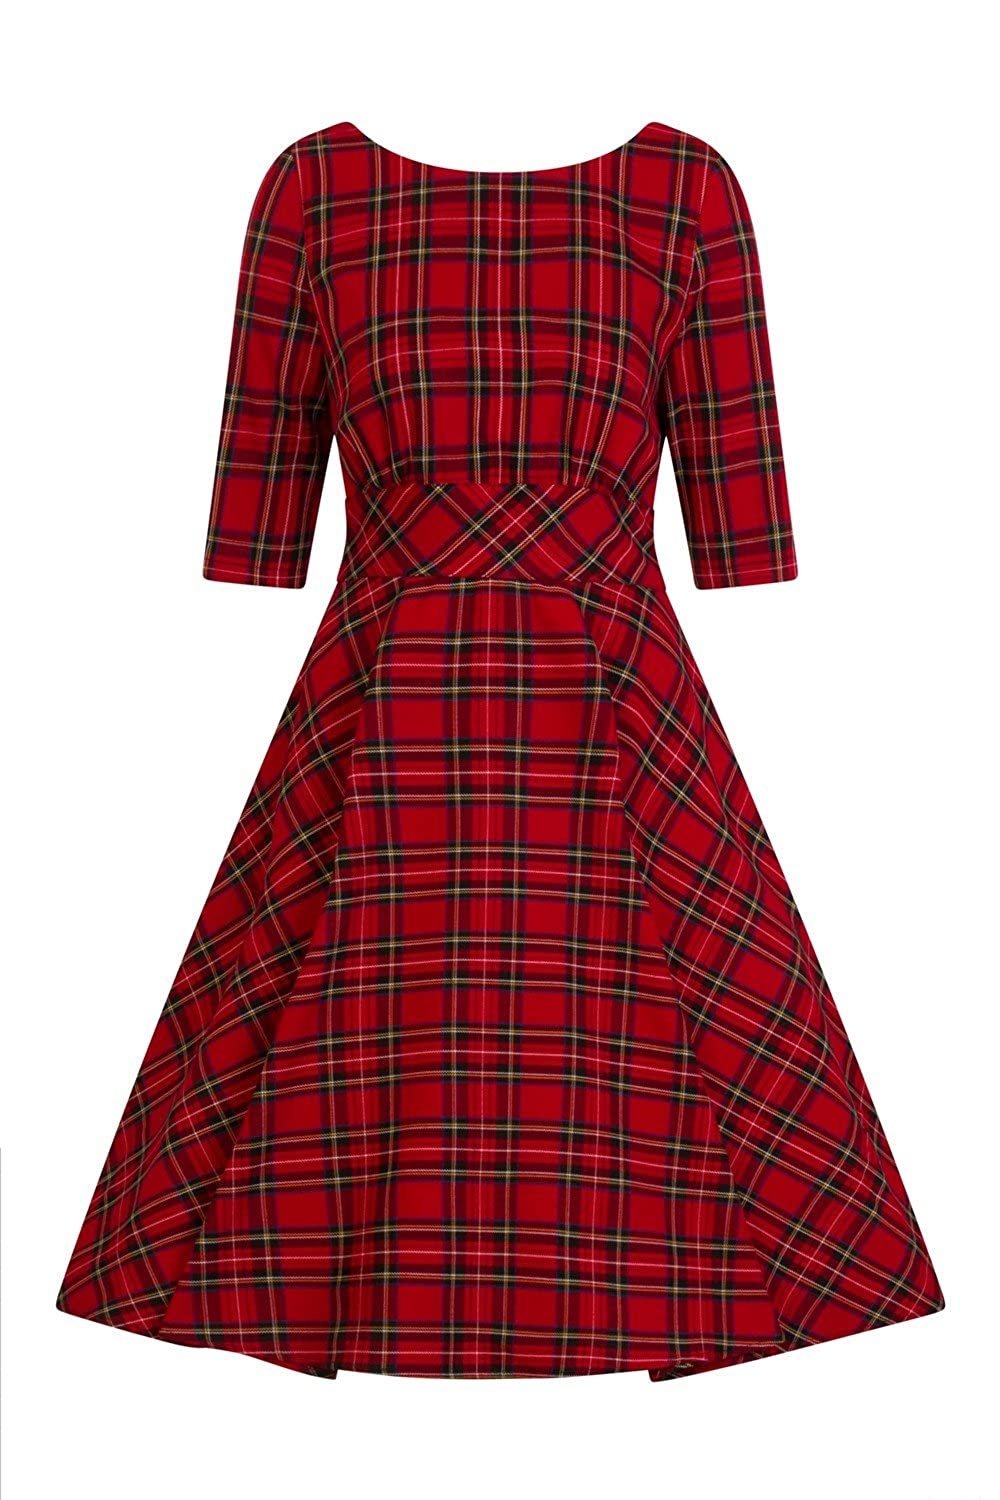 Vintage 50s Dresses: Best 1950s Dress Styles Hell Bunny Irvine Tartan 1950s Vintage Retro Dress XS-4XL $72.99 AT vintagedancer.com